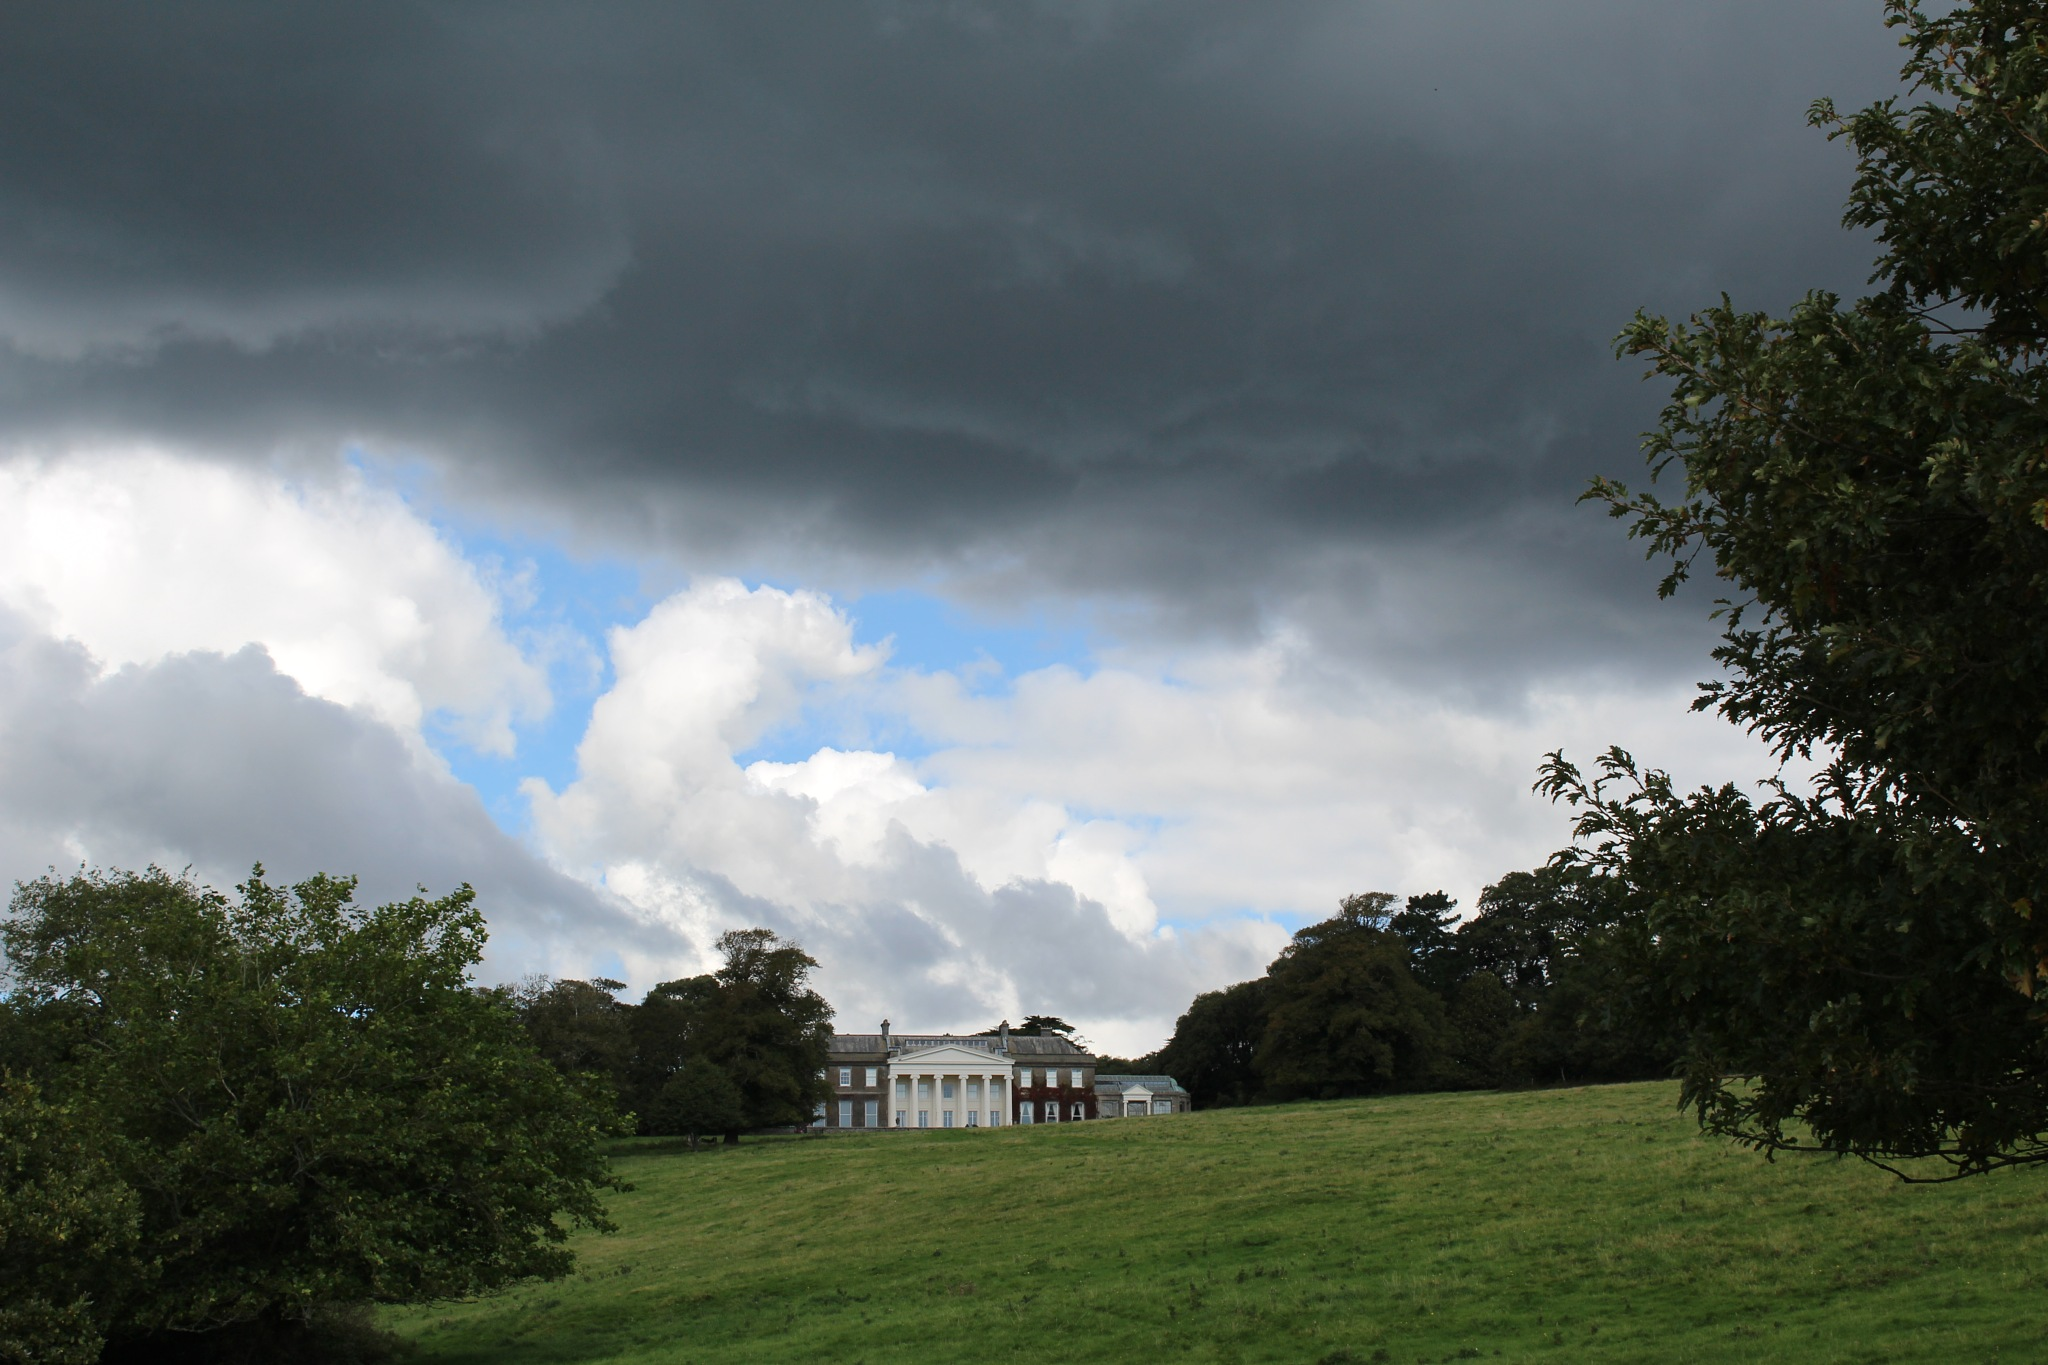 Living Under A Cloud by drgeorgebaileybailey8